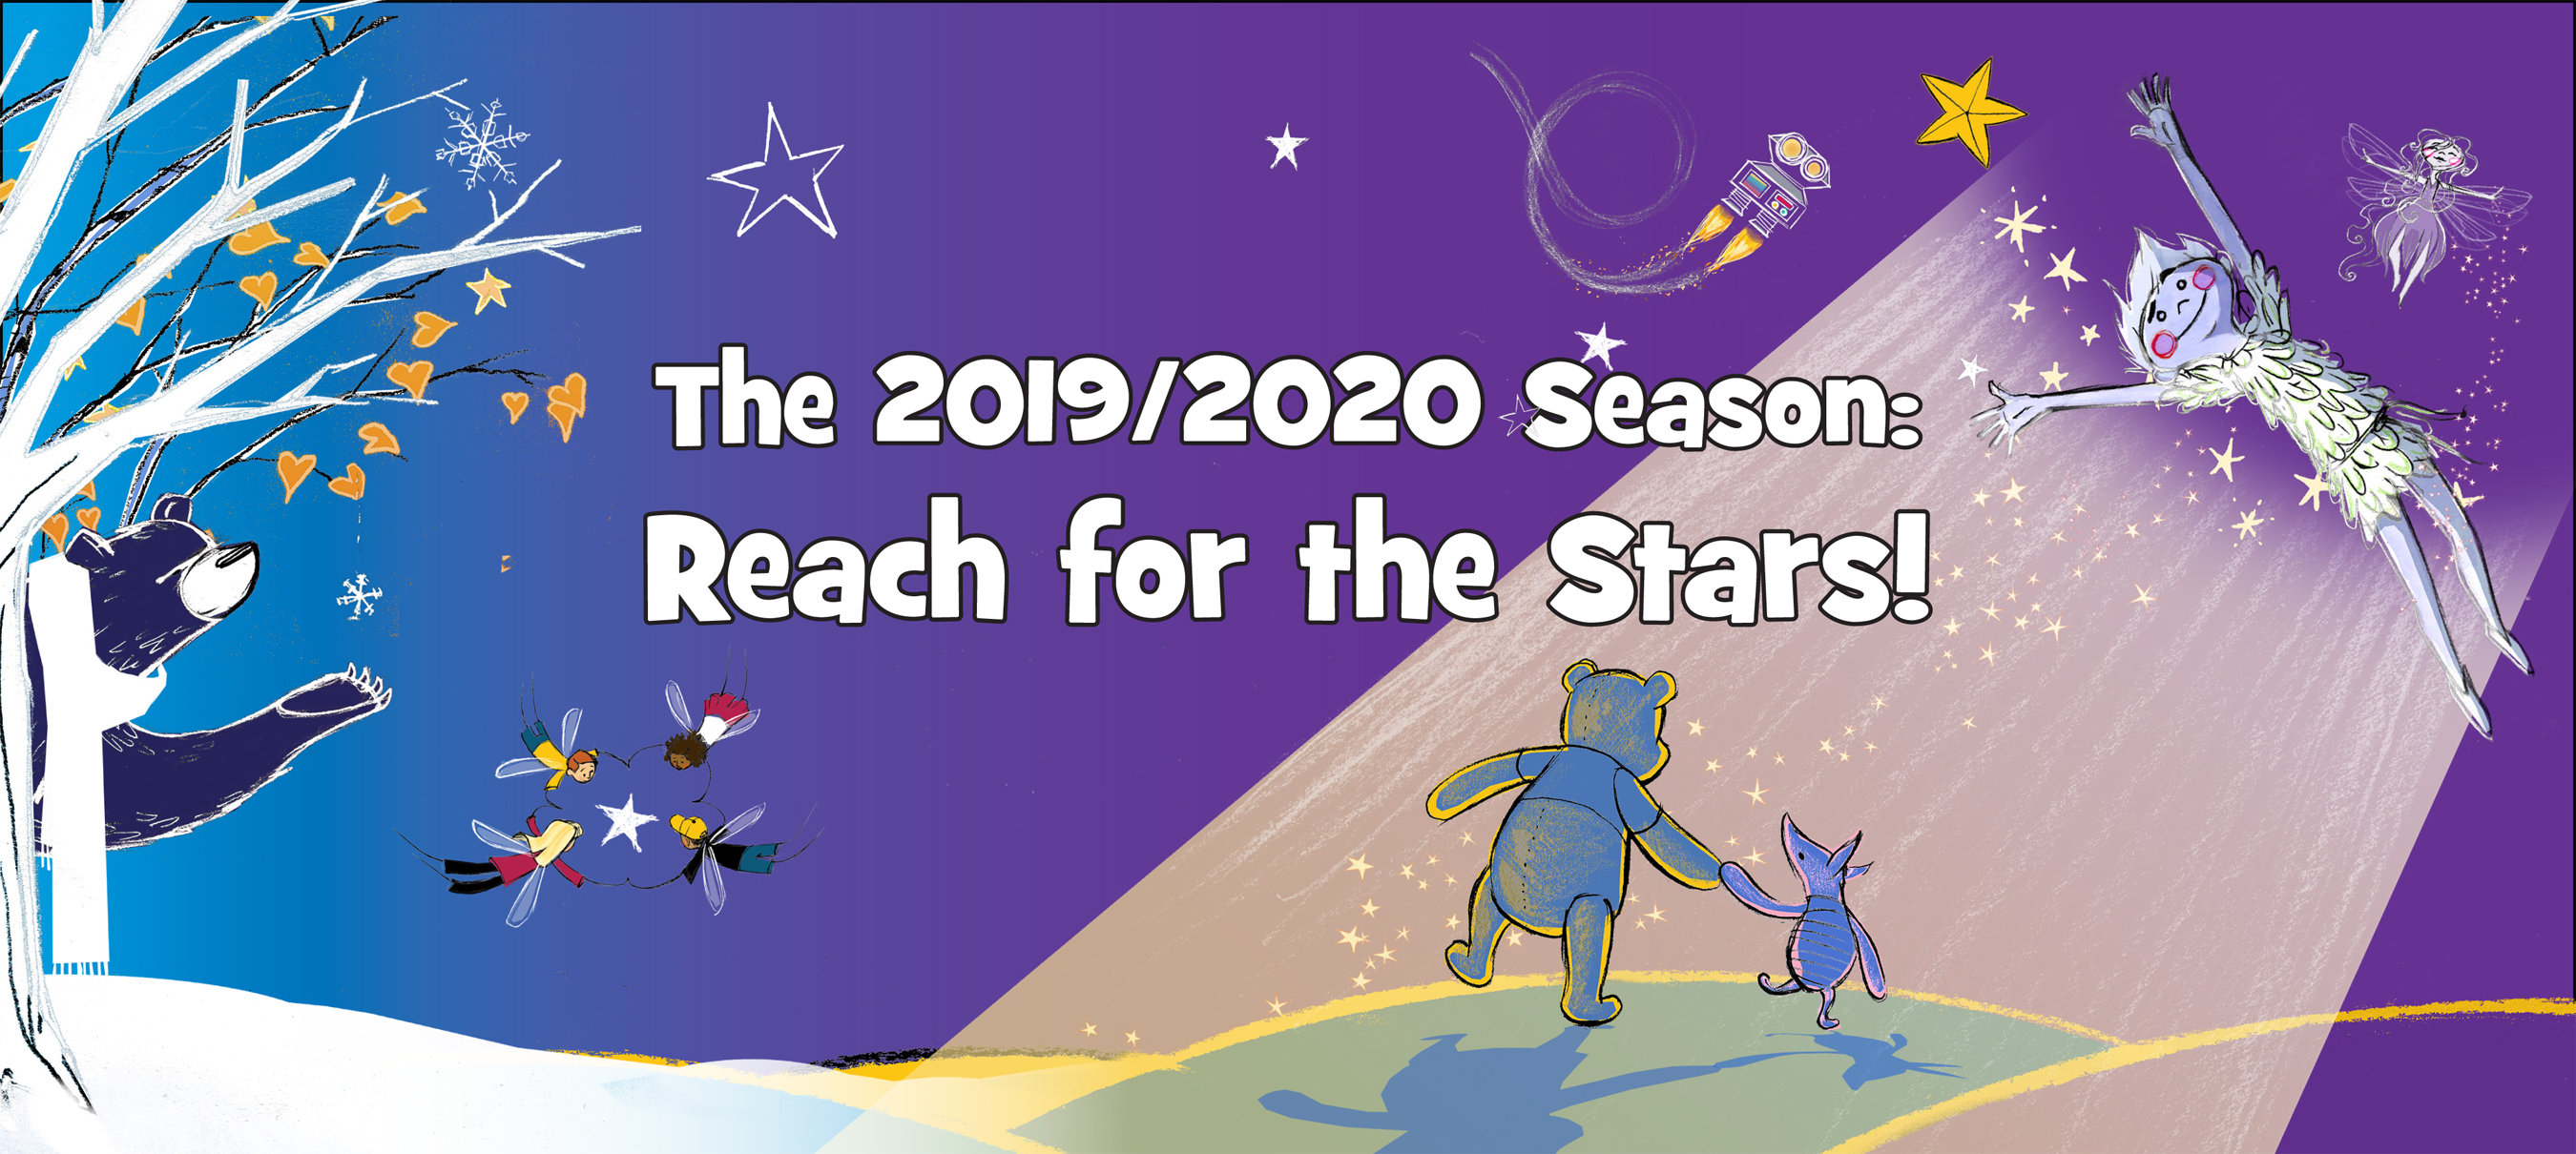 CTYP's 2019/20 Season Reaches for the Stars